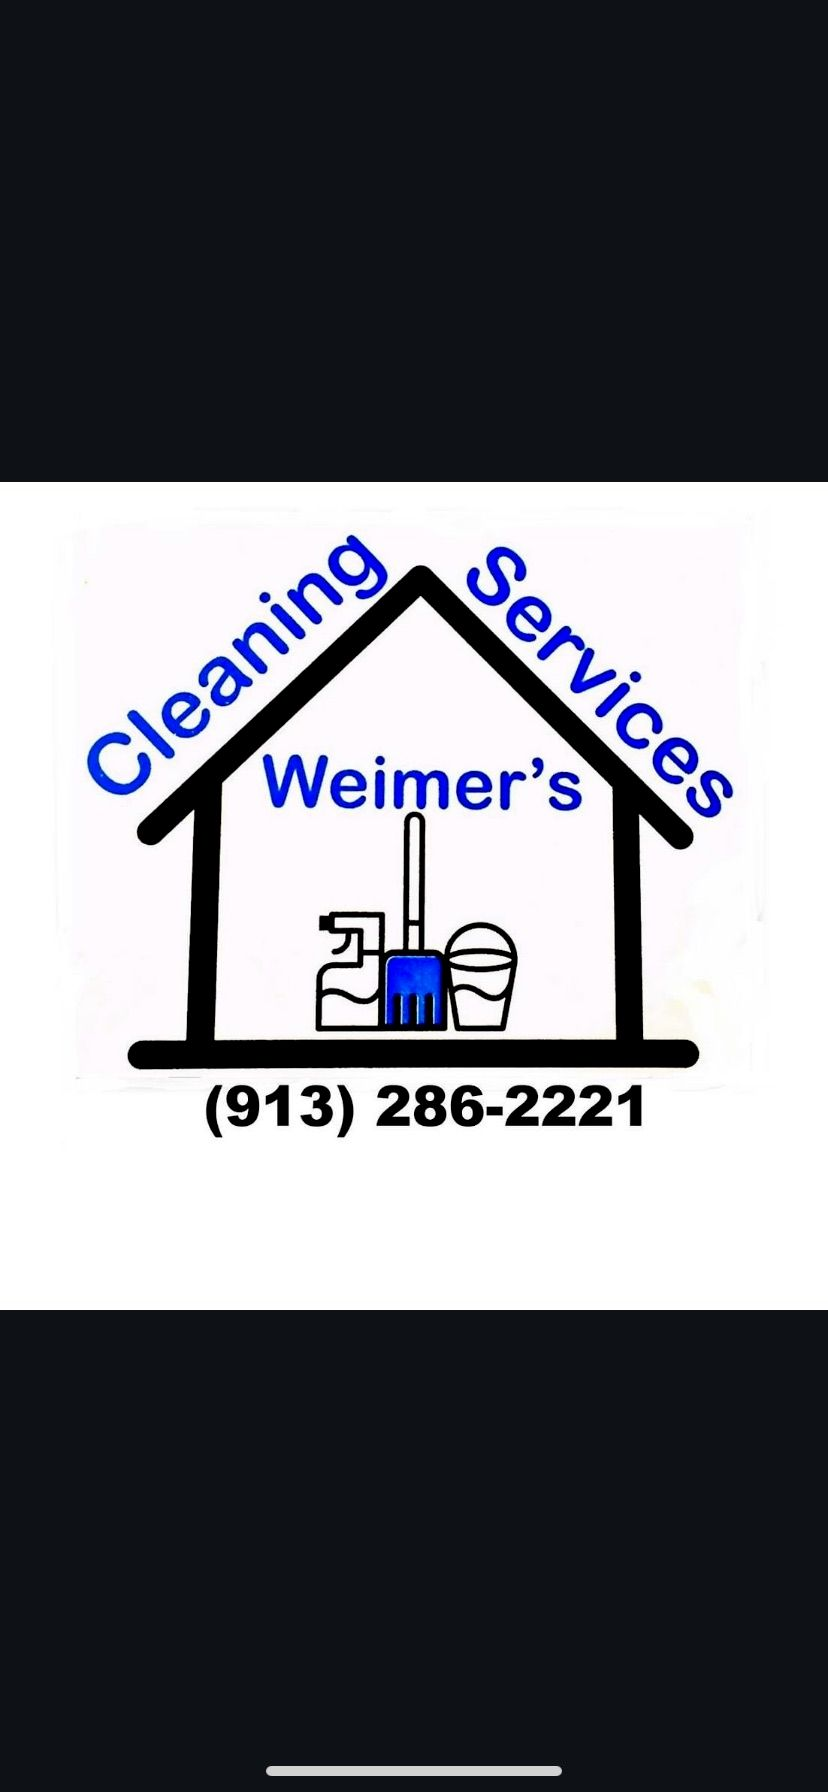 Weimer's Cleaning Services LLC